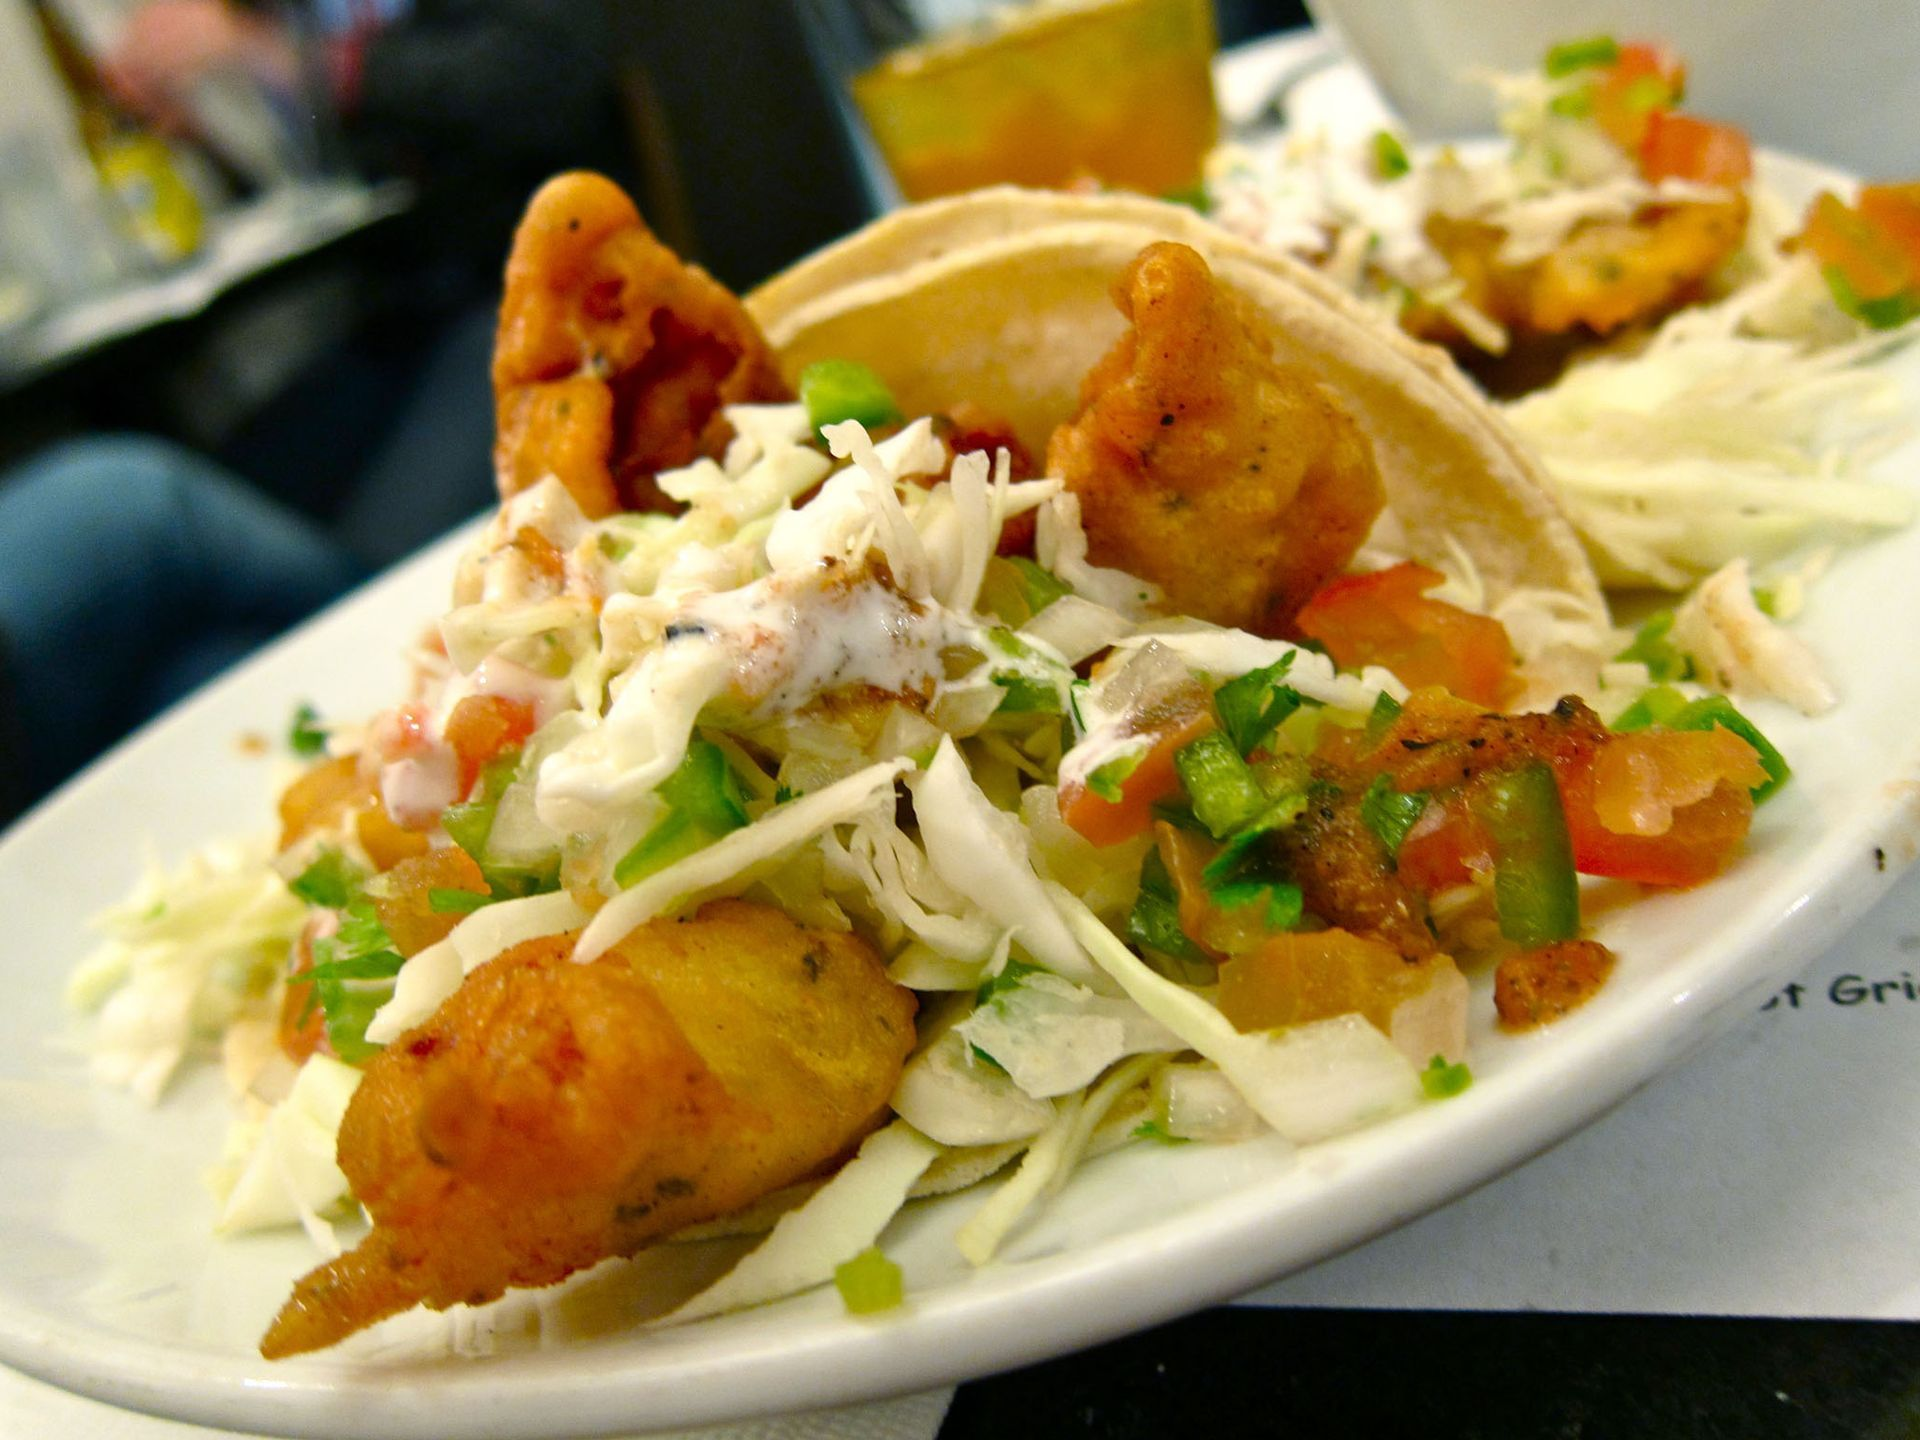 The Tastiest Tacos Across The Usa Beer Battered Fish Tacos Fish Tacos Recipe Baked Fish Tacos